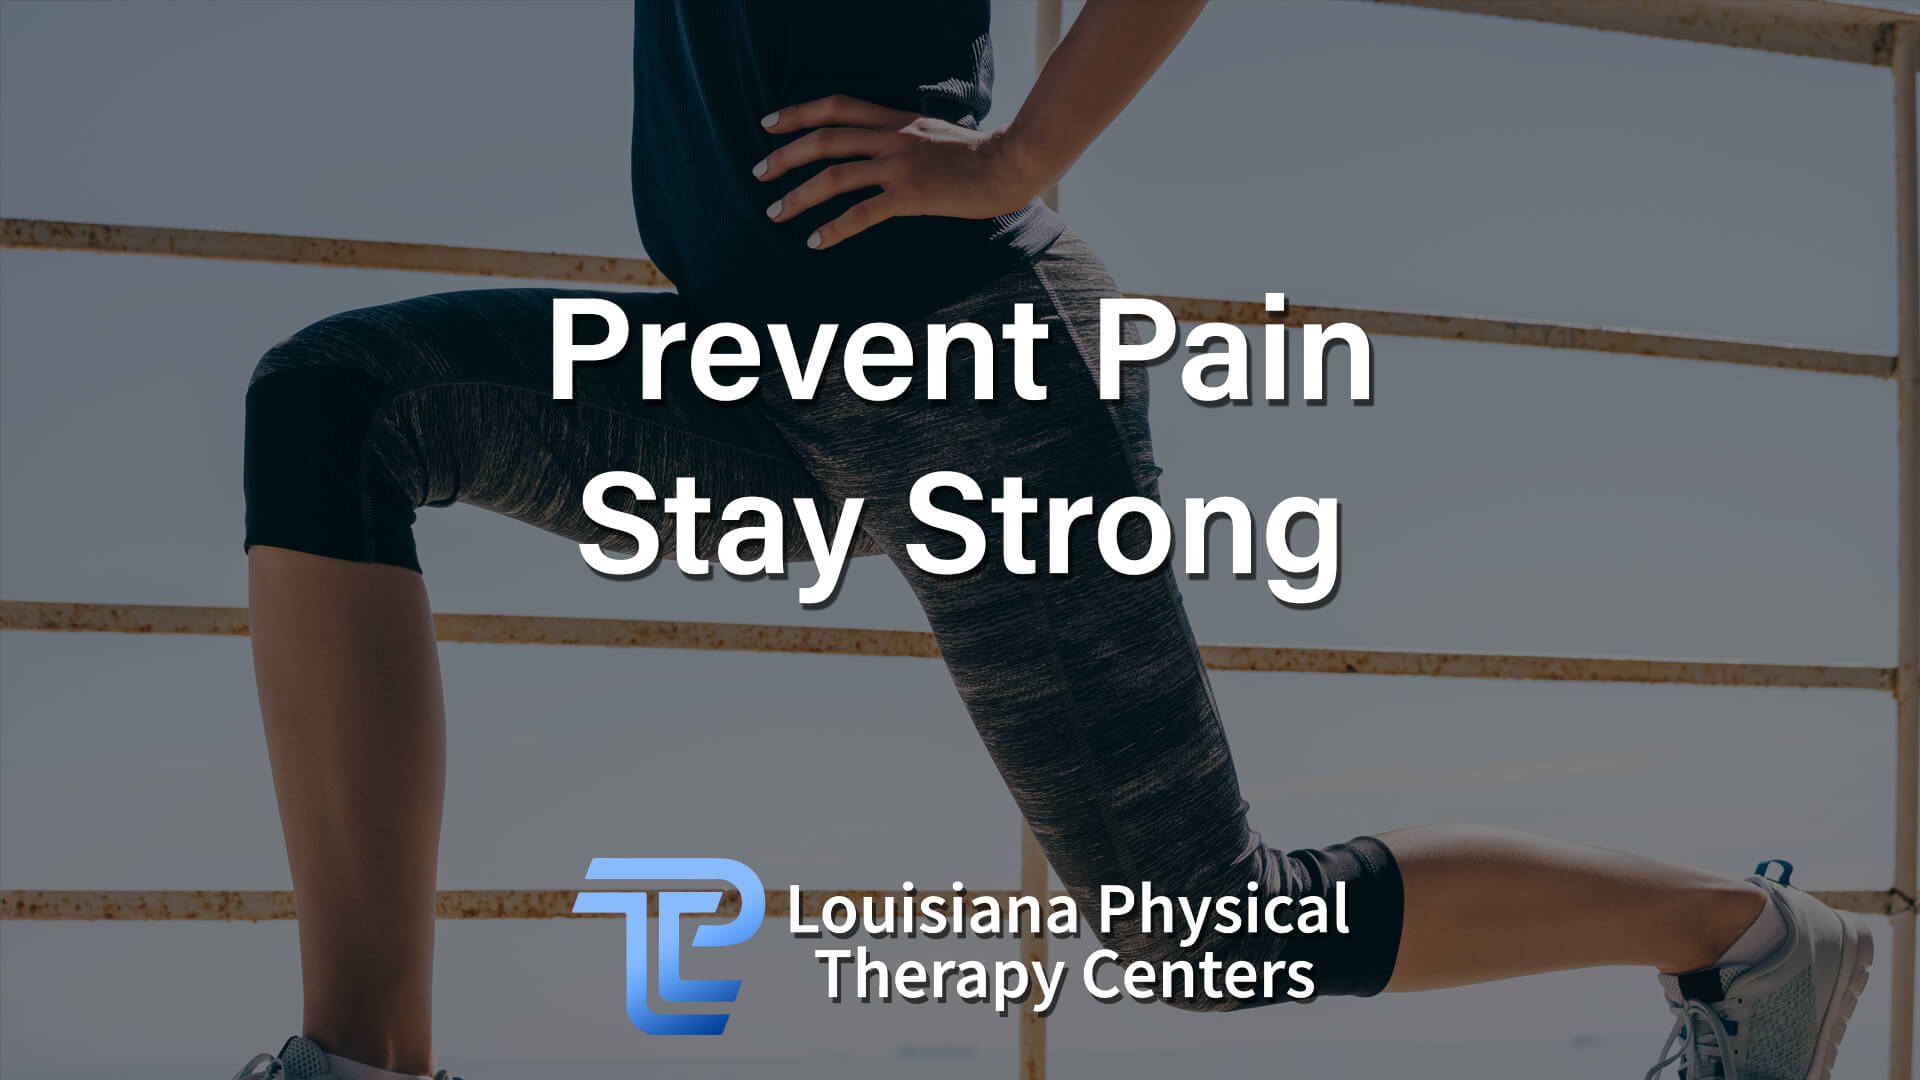 Prevent Pain Stay Strong